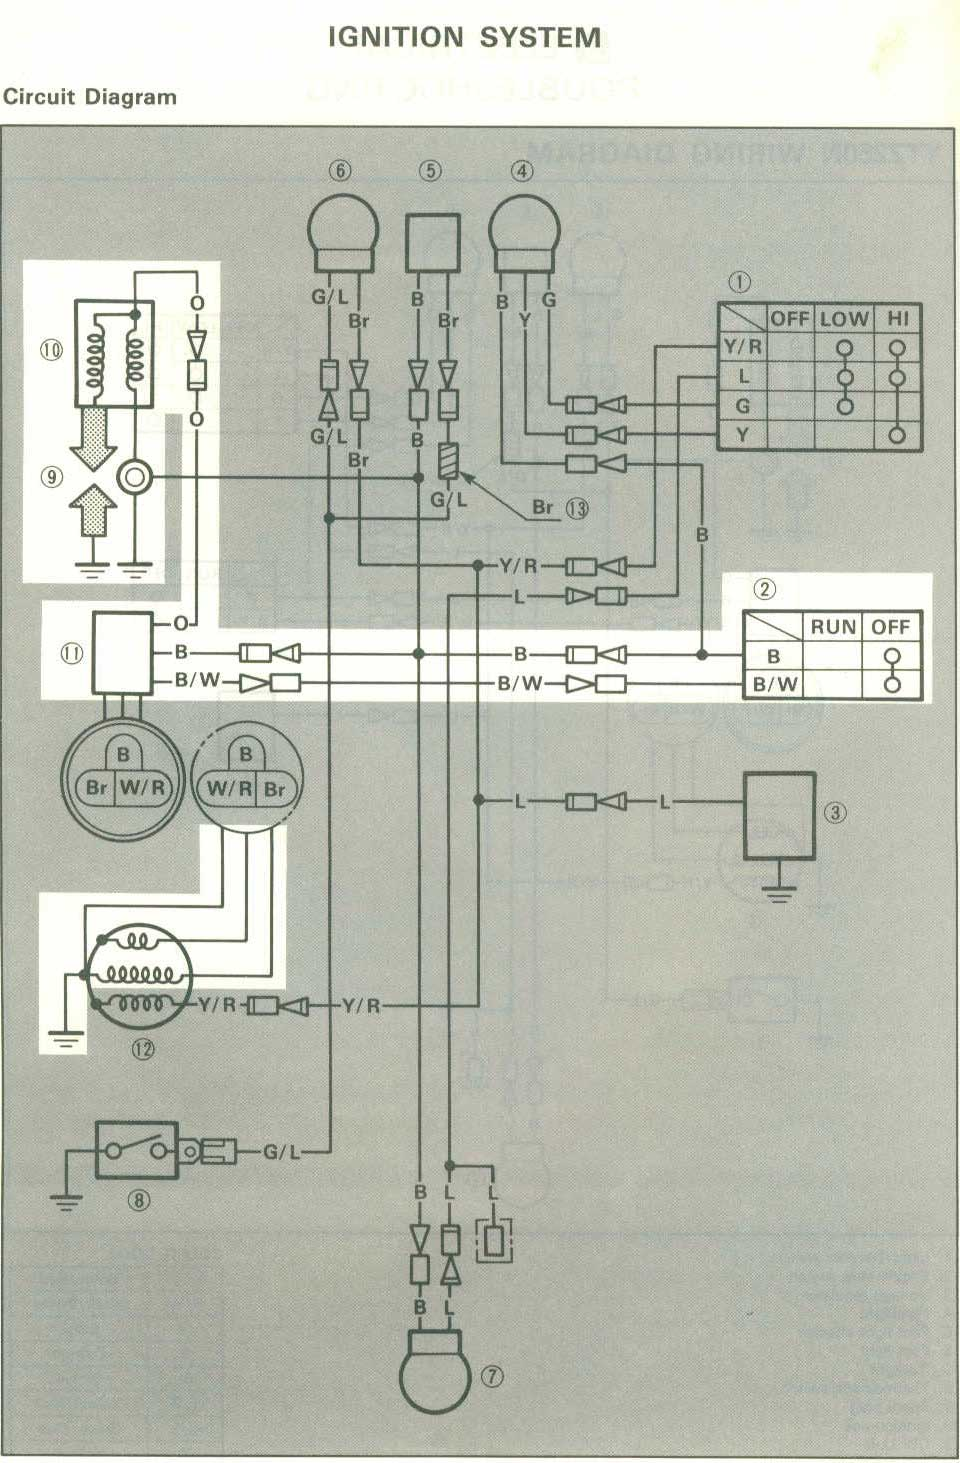 Yamaha Ignition Switch Wiring Diagram 1991 225 Schematics Outboard 3 Wheeler World Tech Help Diagrams Rh 3wheelerworld Com Pdf